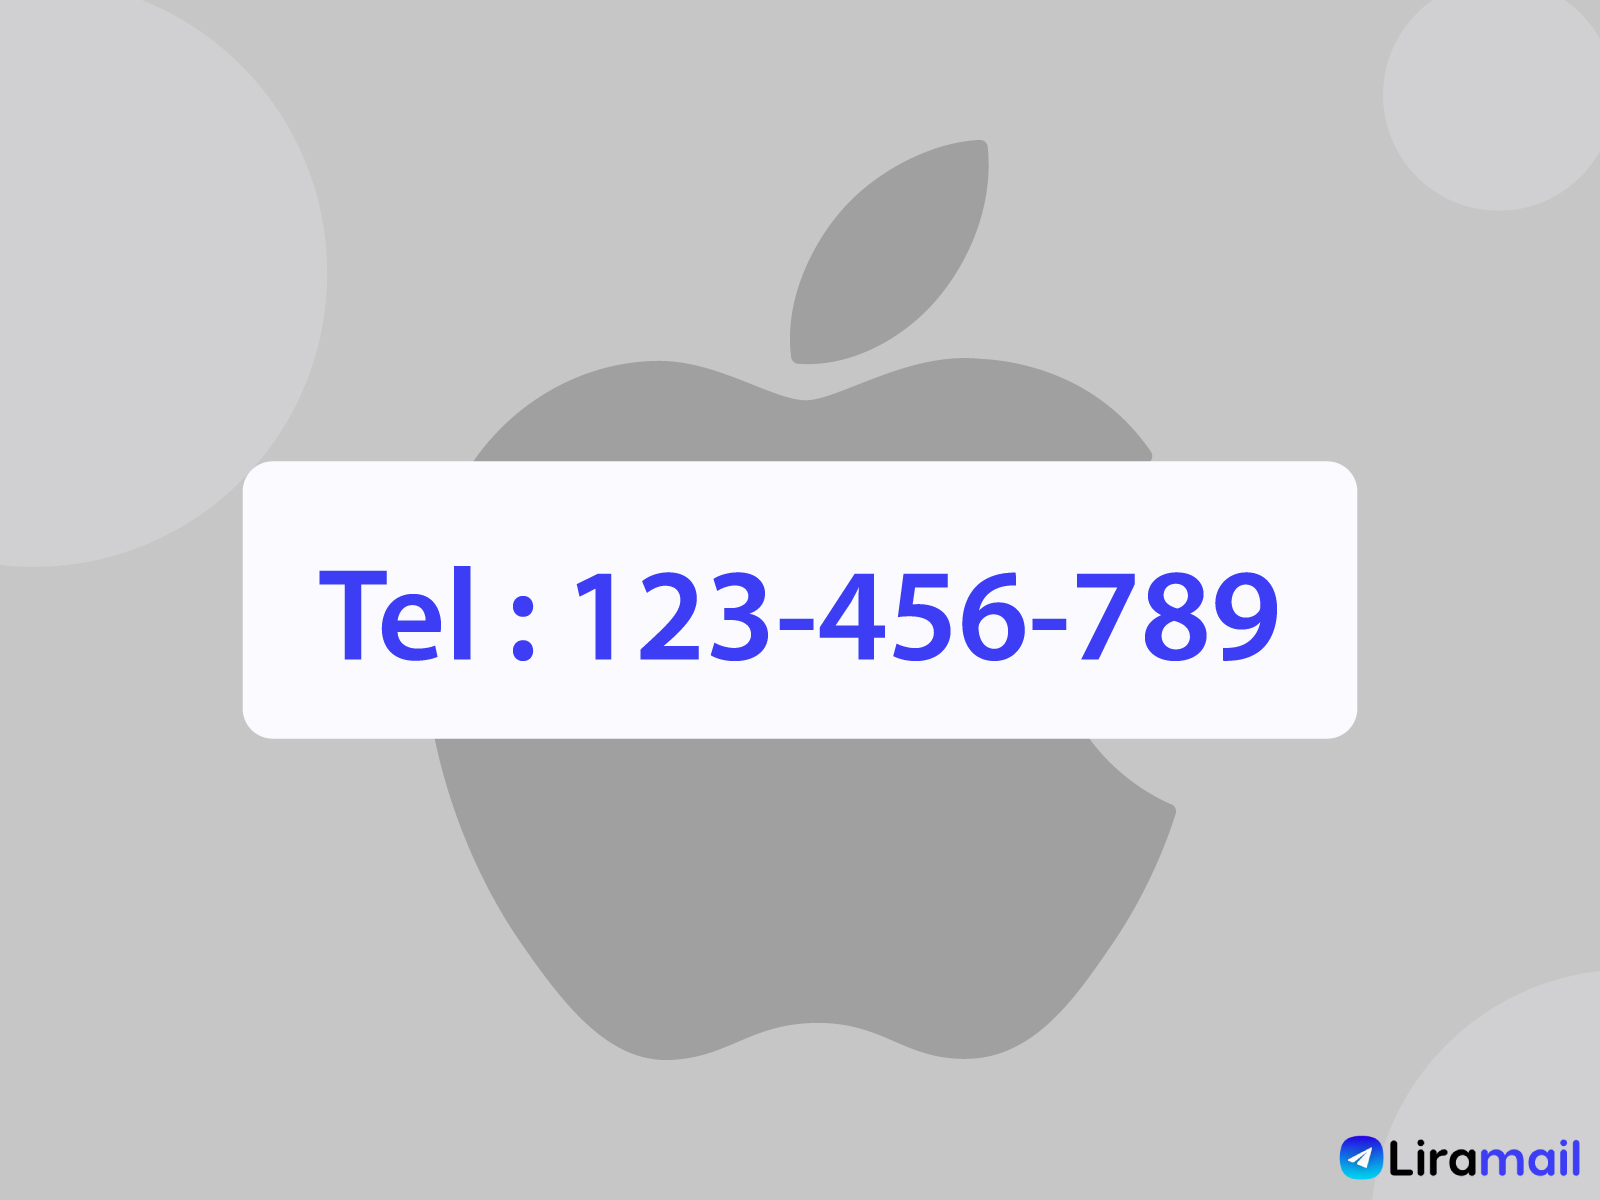 4 ways to fix iPhone numbers converted into blue links in the email? 1